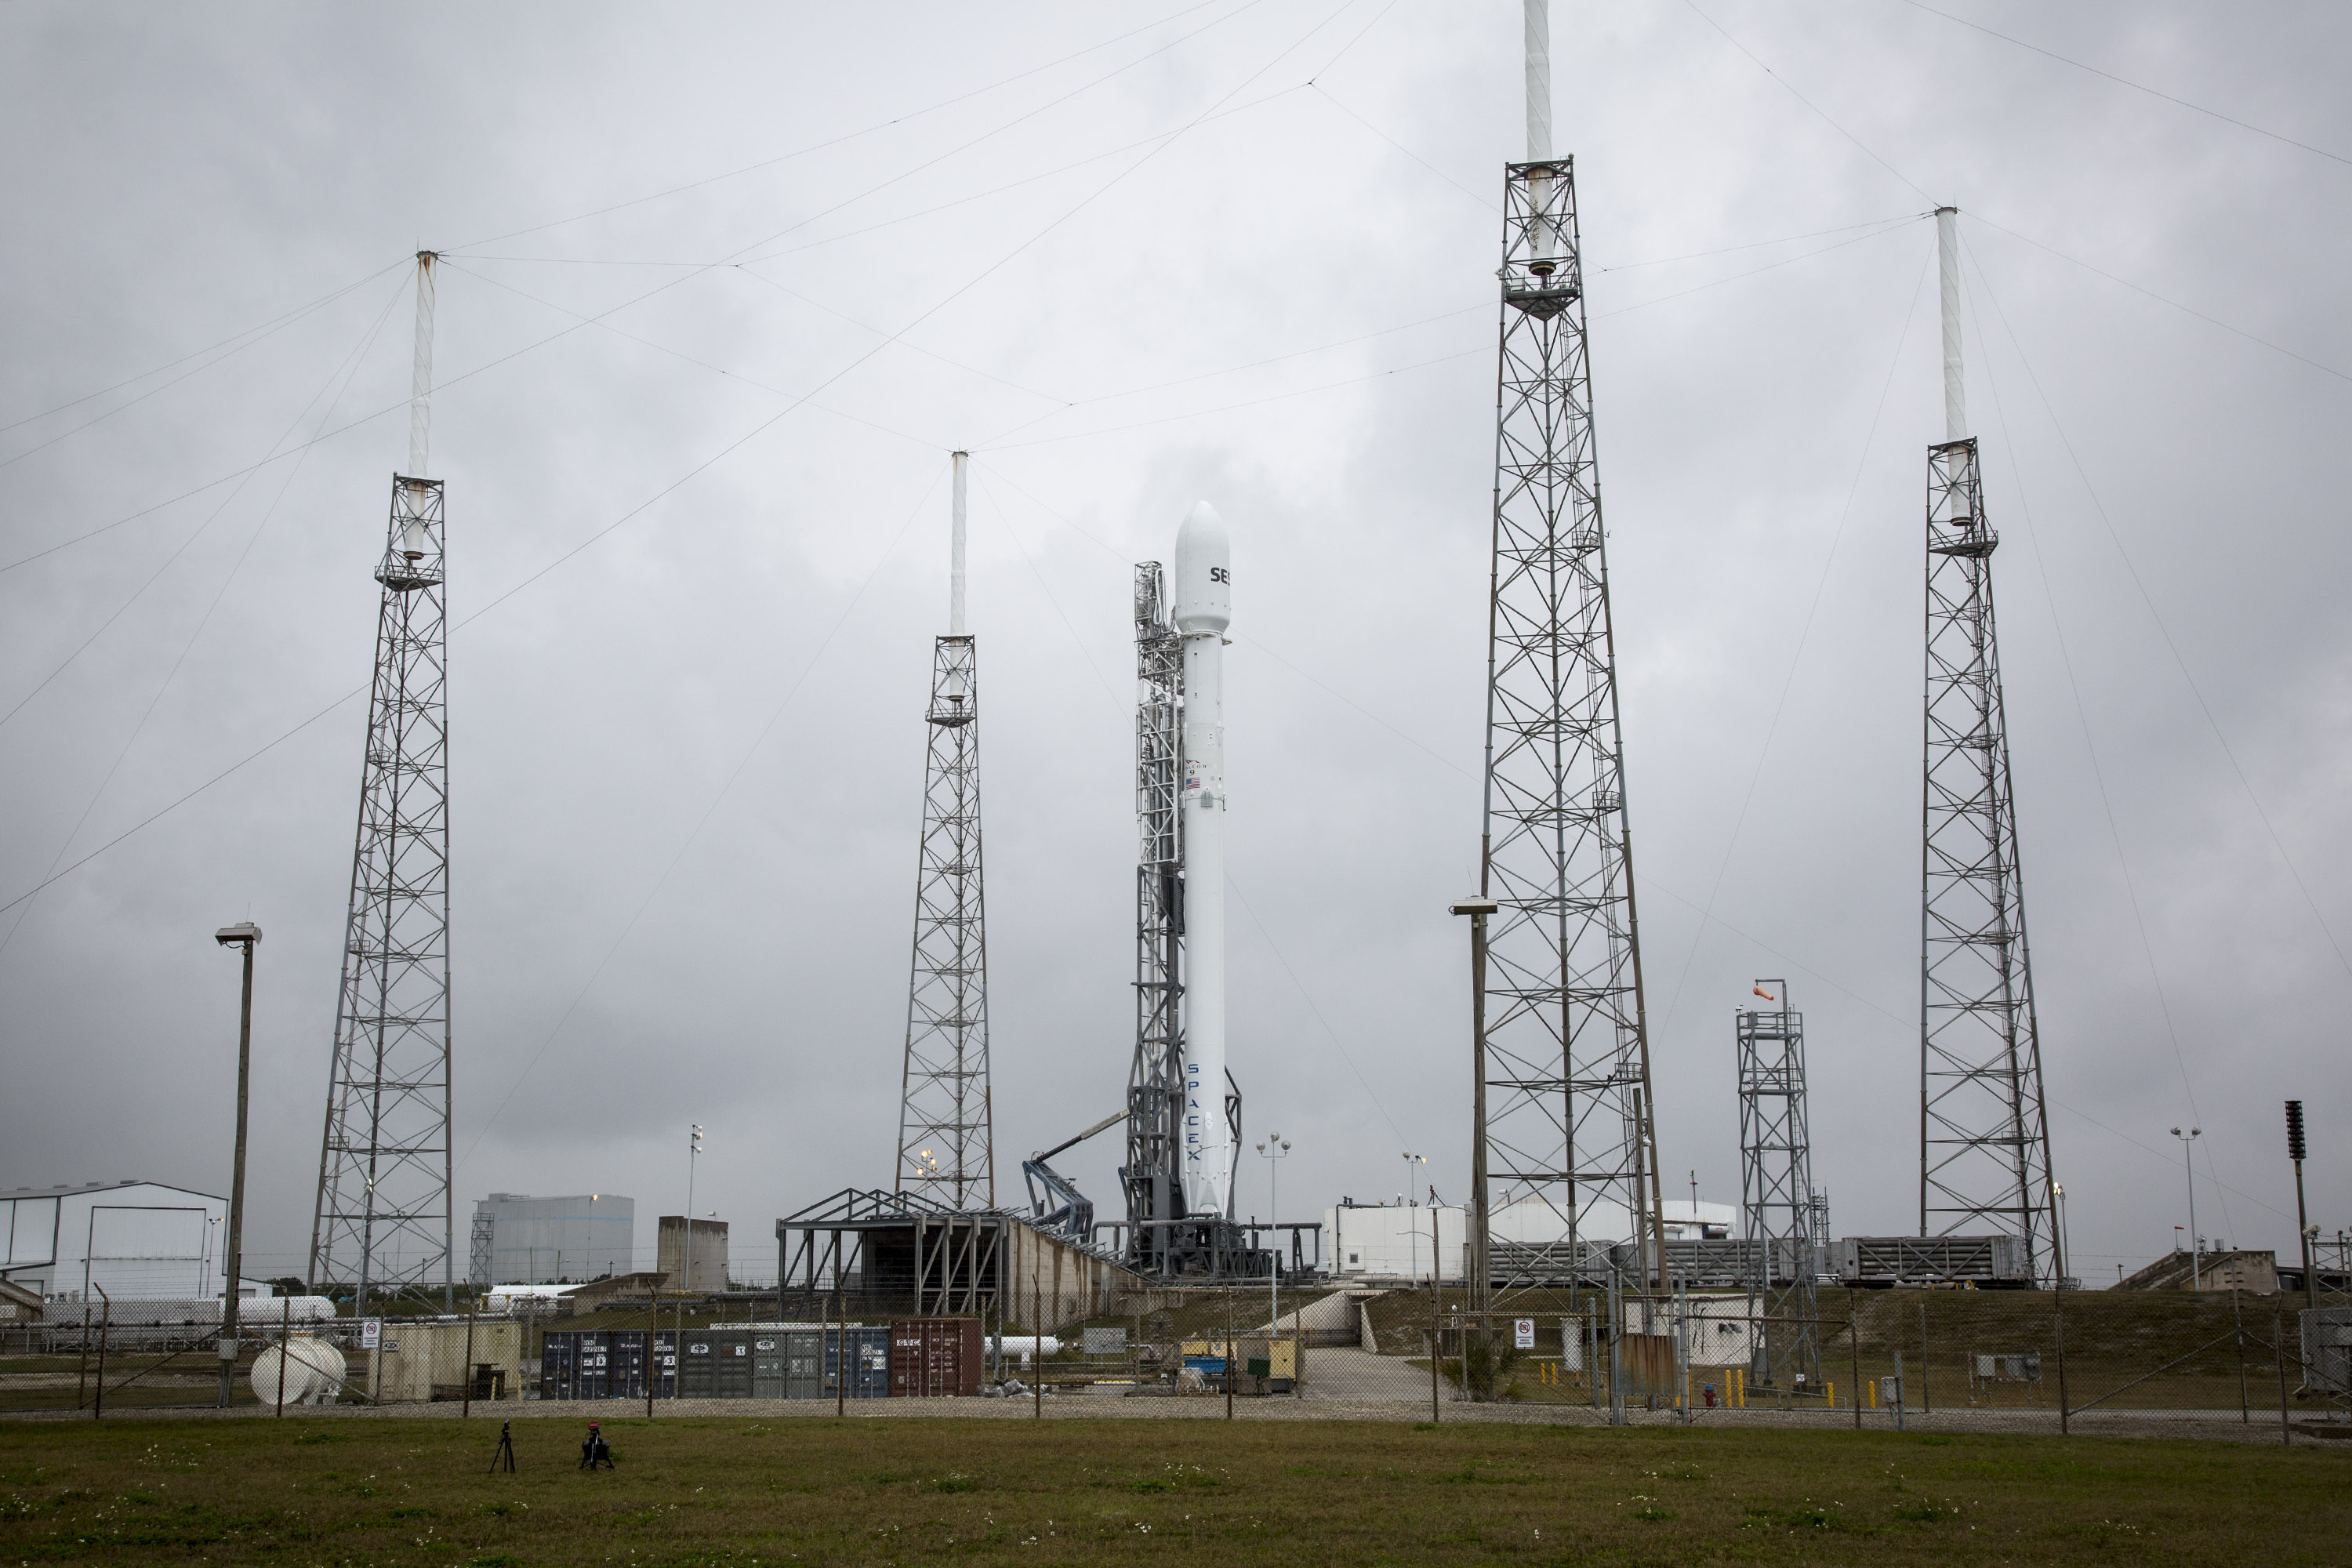 SpaceX Launches Reused Falcon 9 and Dragon Capsule to Resupply ISS